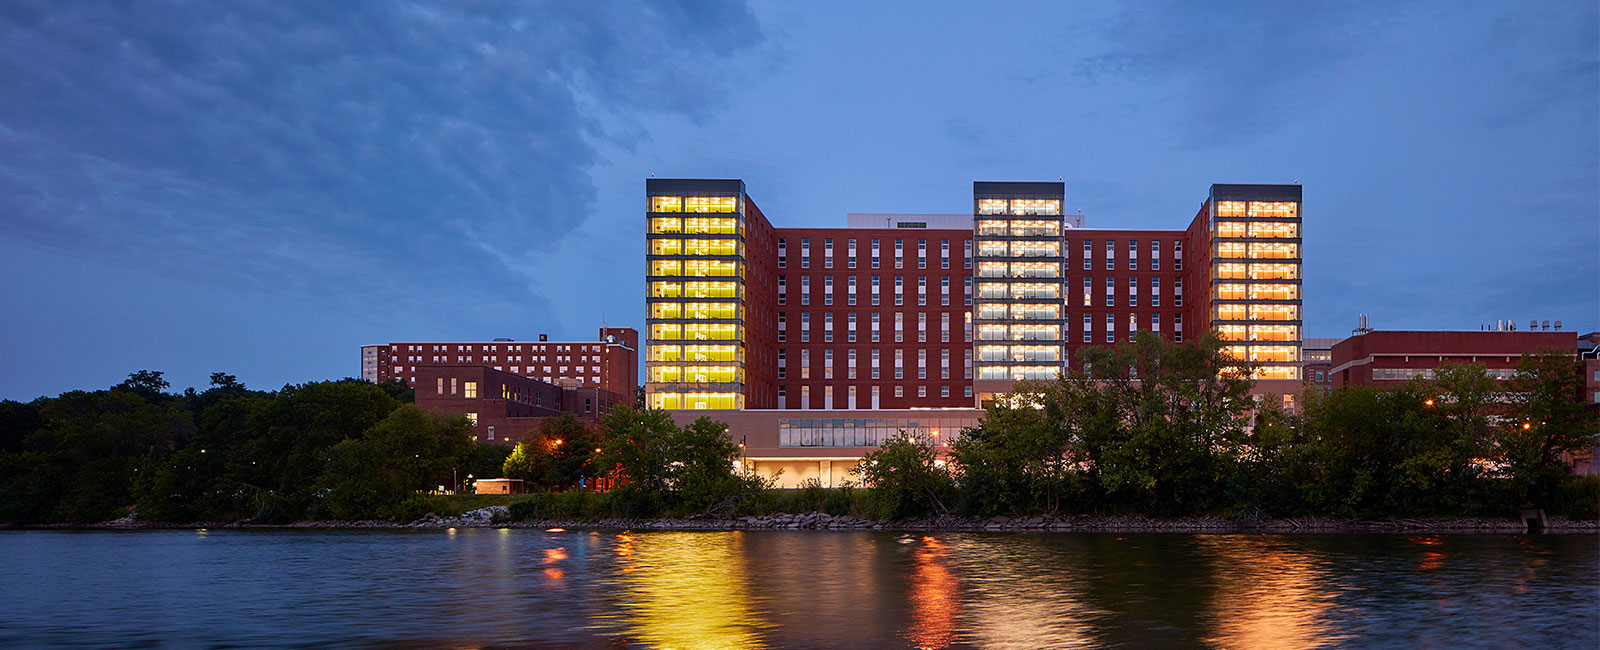 University of Iowa - Elizabeth Catlett Residence Hall